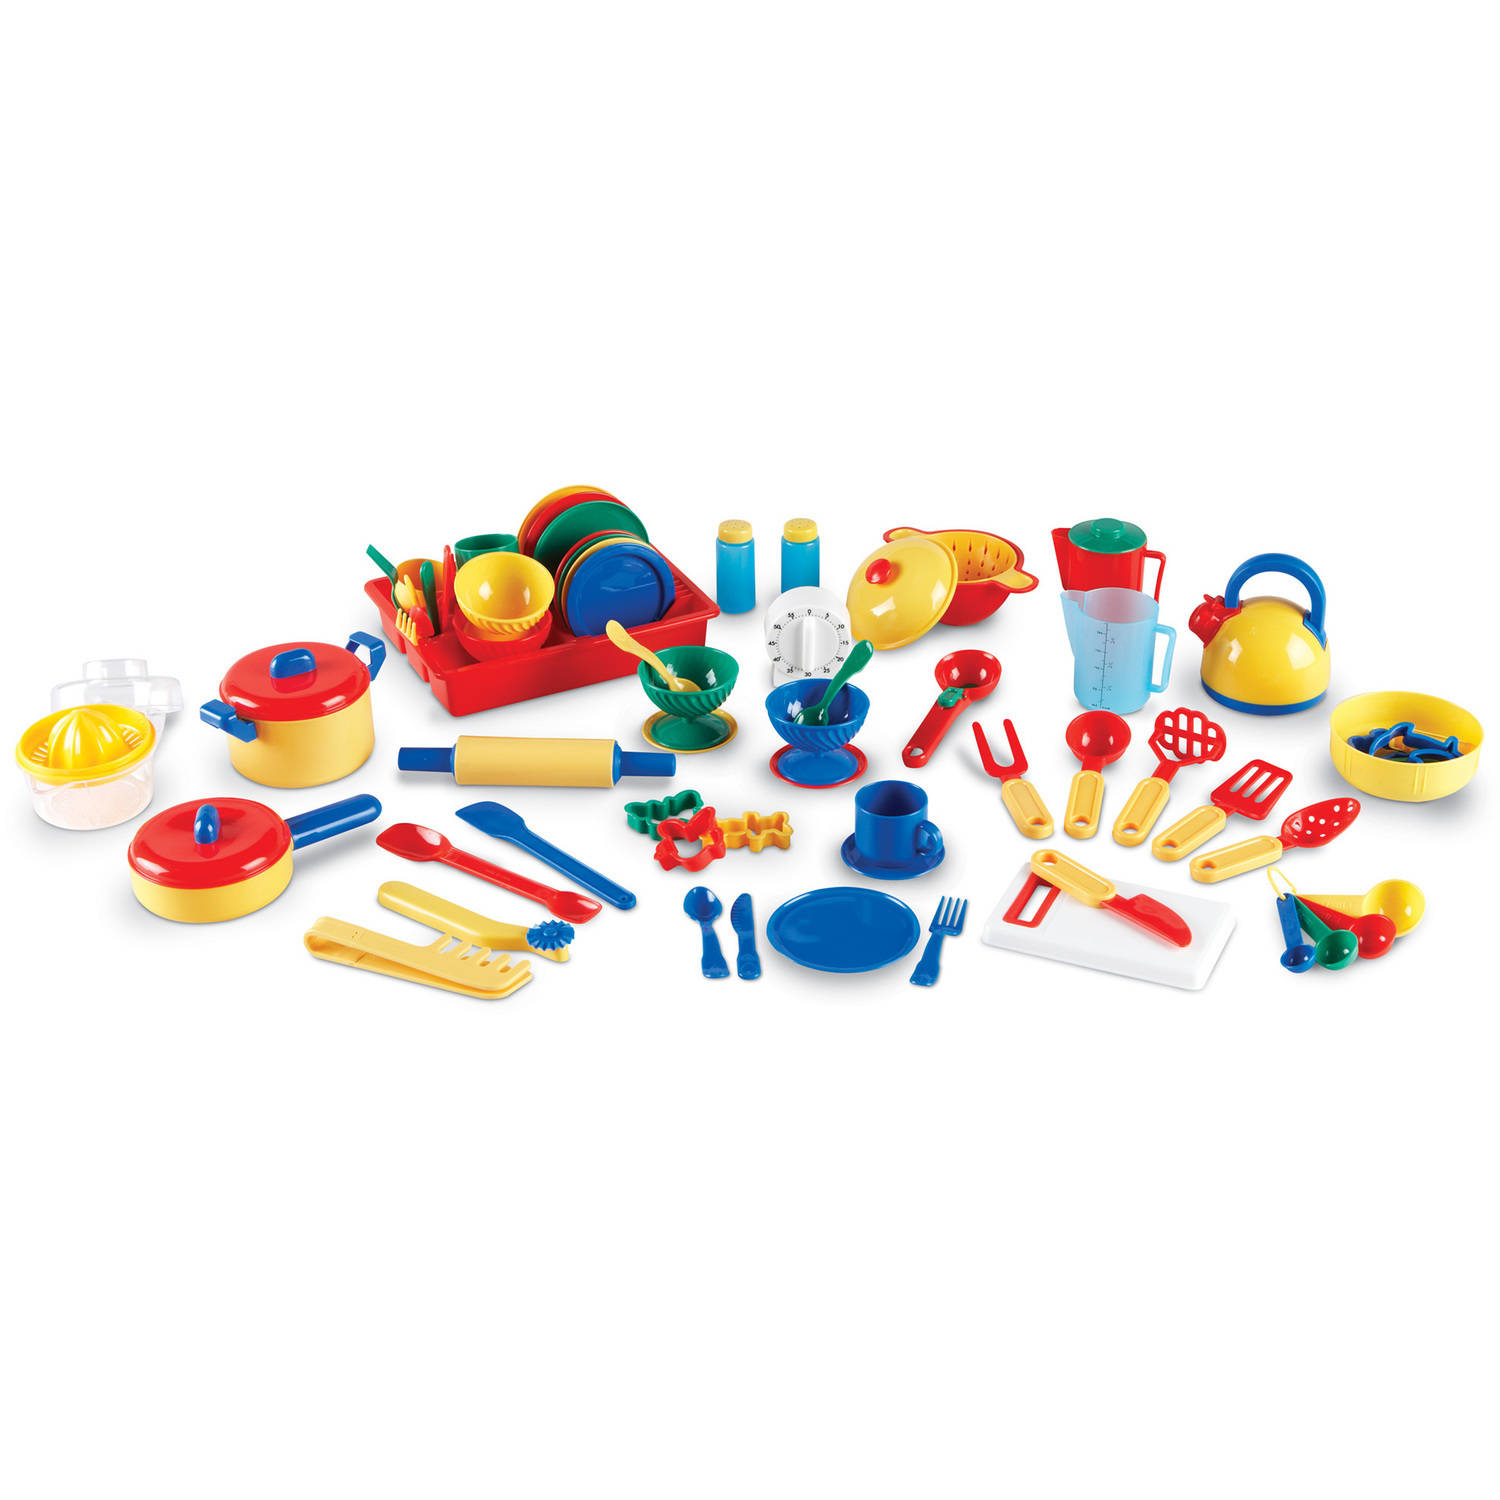 Learning Resources Pretend and Play Kitchen Set - Walmart.com